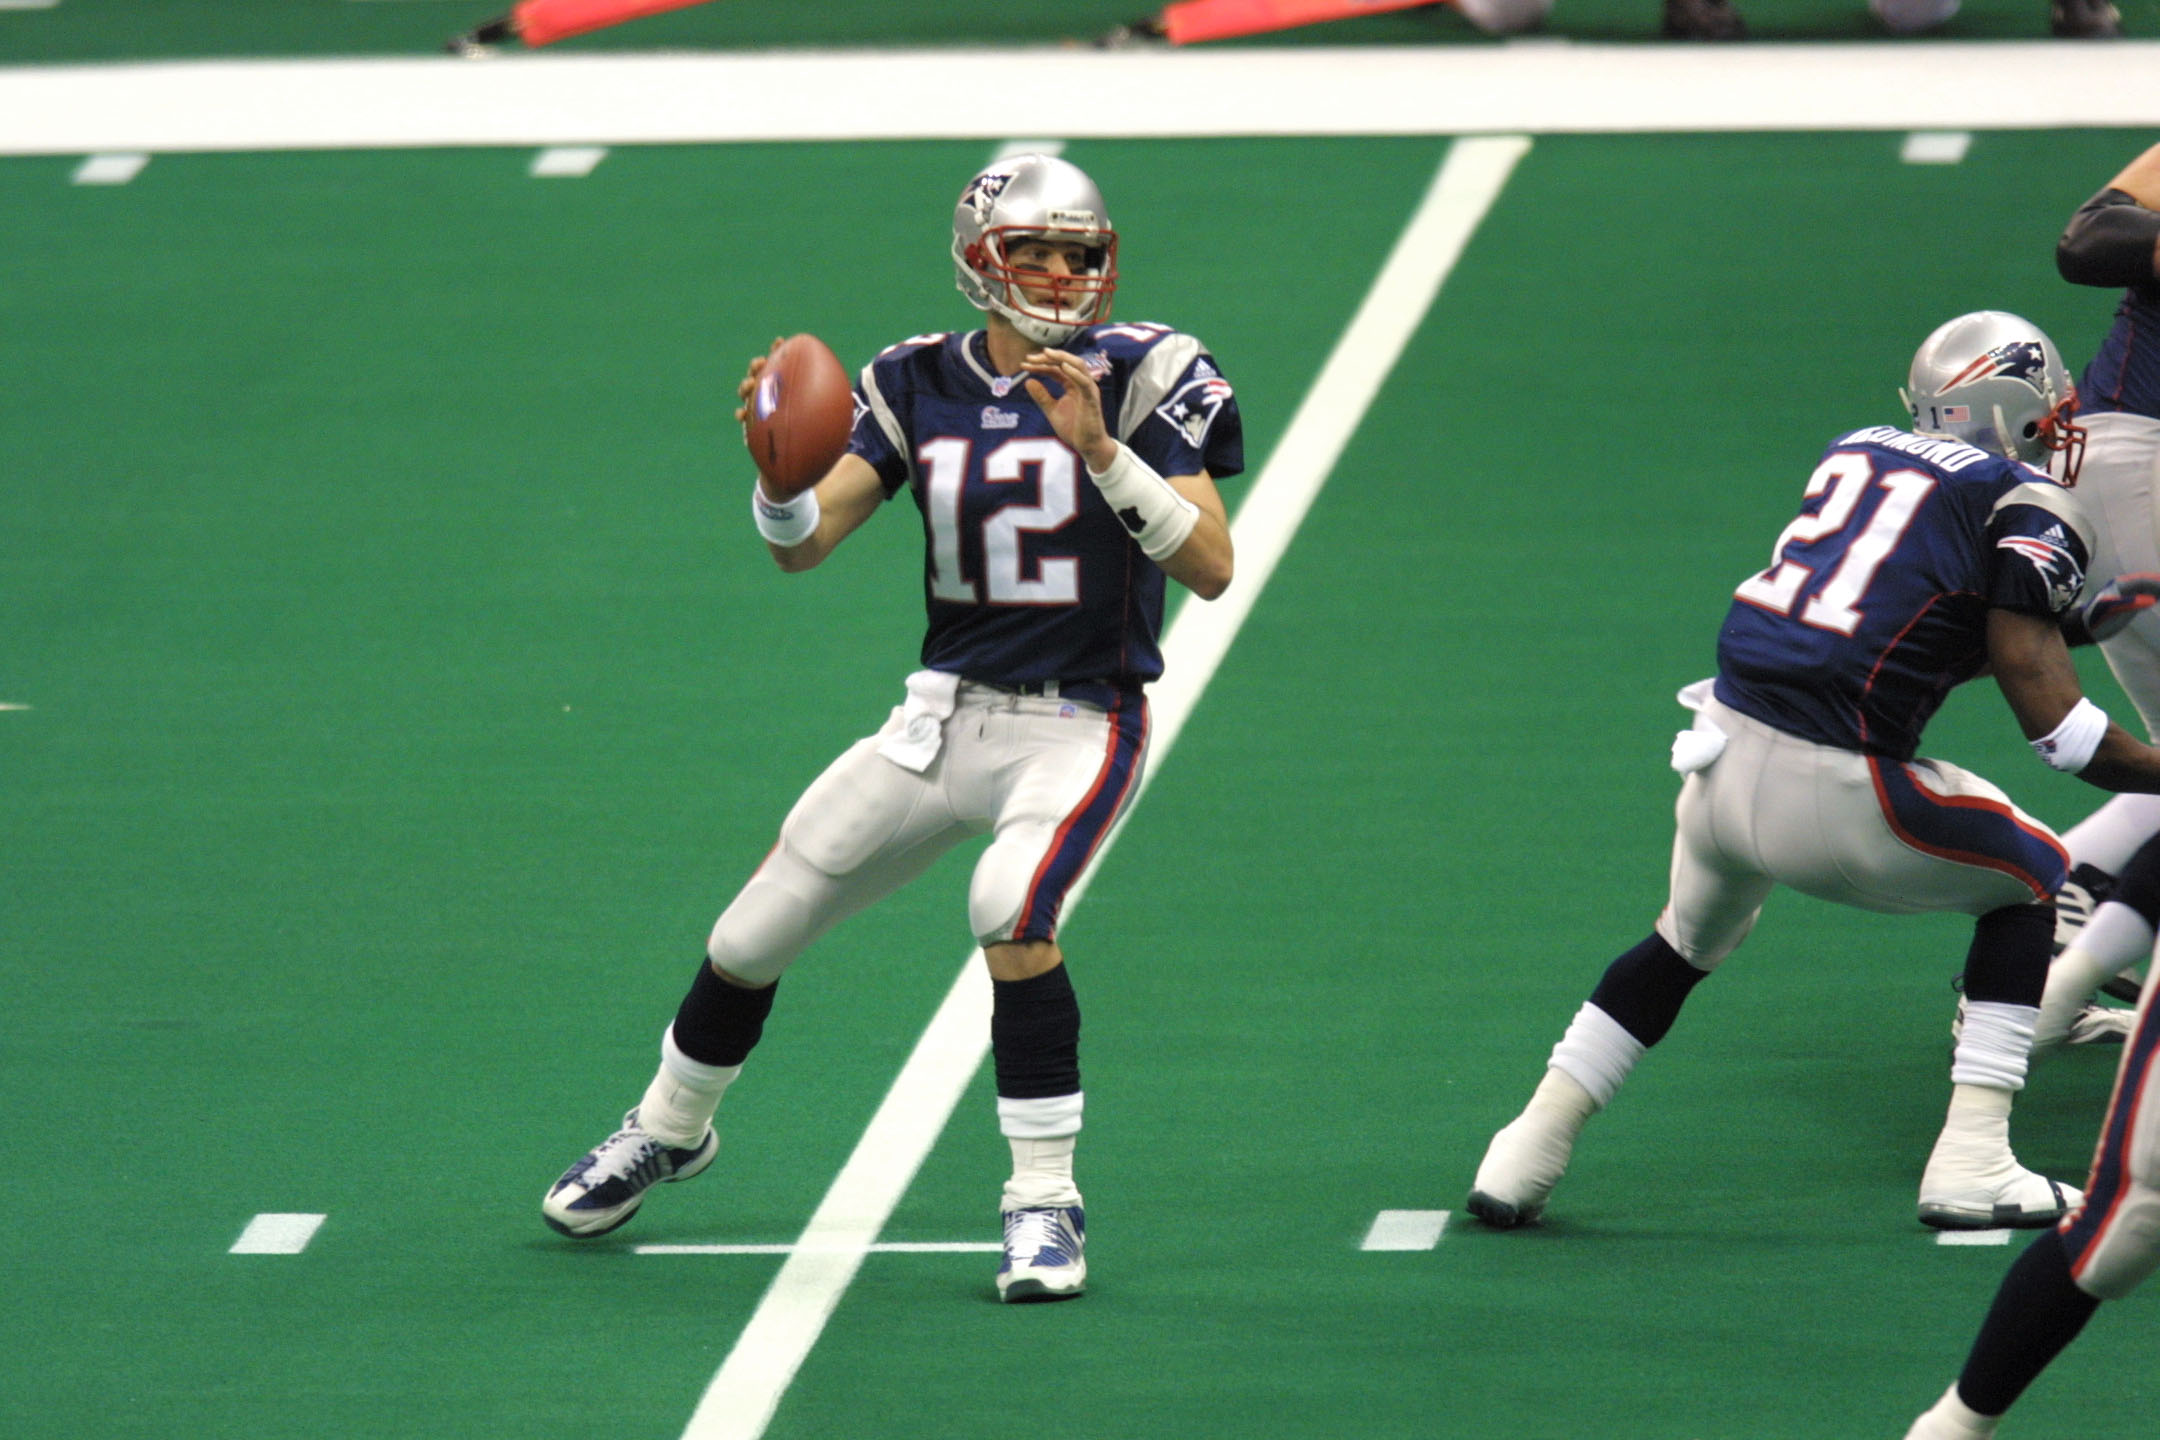 03 Feb 2002:  Quarterback Tom Brady #12 of the New England Patriots looks to throw a pass against the St.Louis Rams  during Superbowl XXXVI at the Superdome in New Orleans, Louisiana.  The Patriots defeated the Rams 20-17. DIGITAL IMAGE. Mandatory Credit: